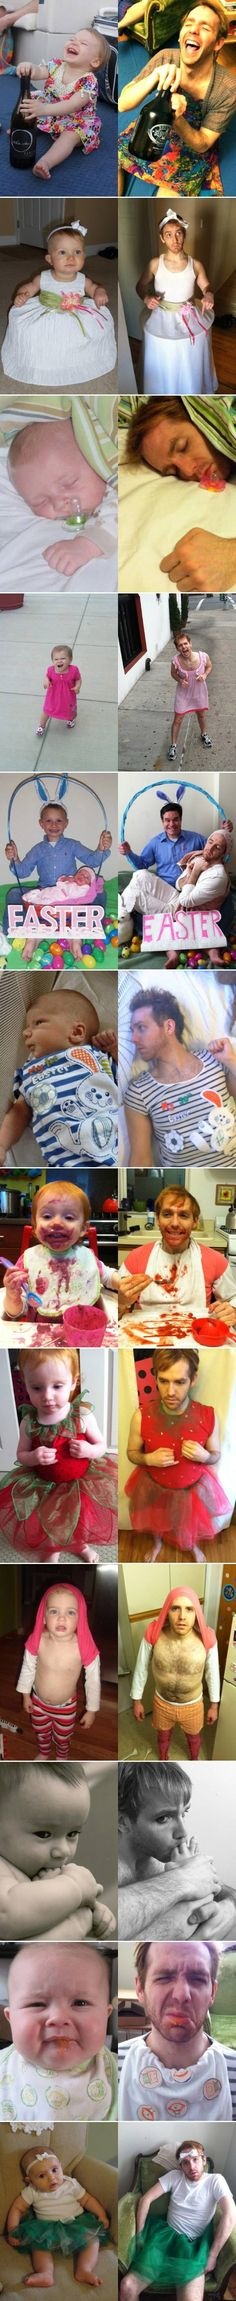 One man's journey to recreate his girlfriend's baby photos..... hahaha